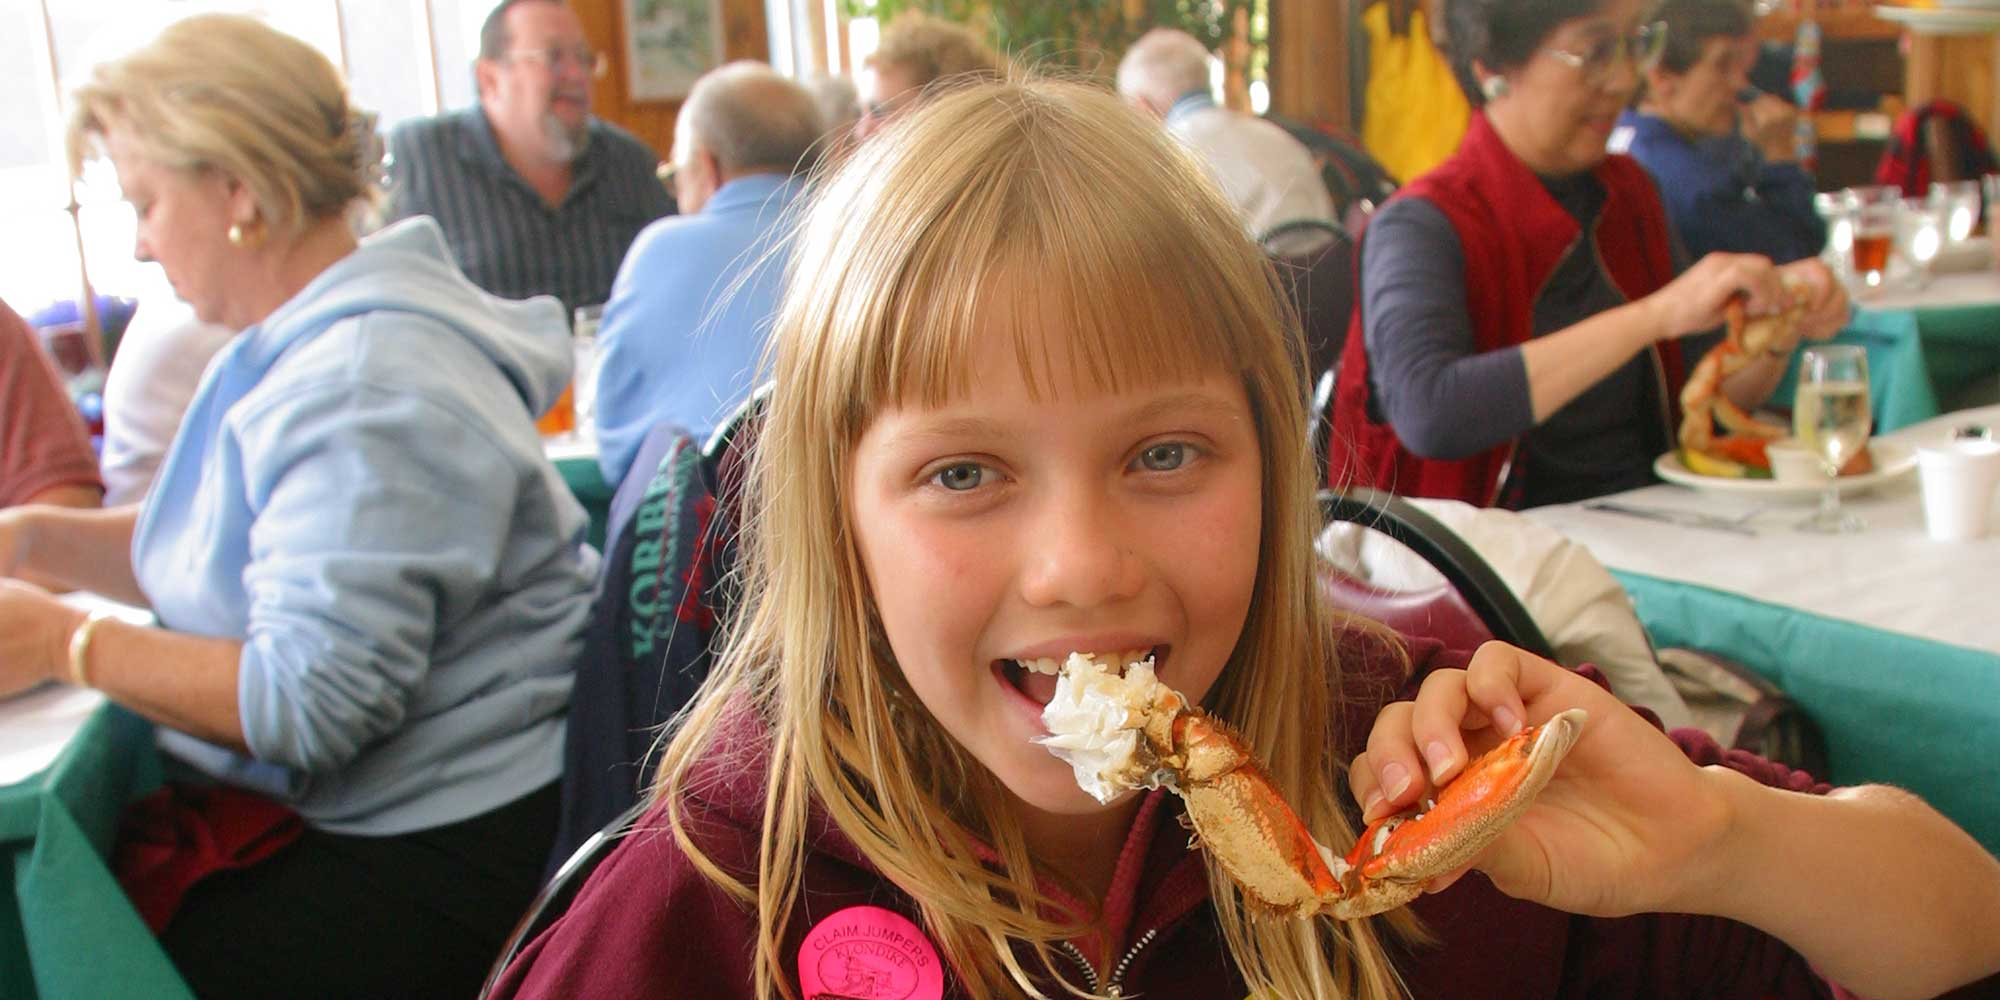 a girl eating crab inside a restaurant